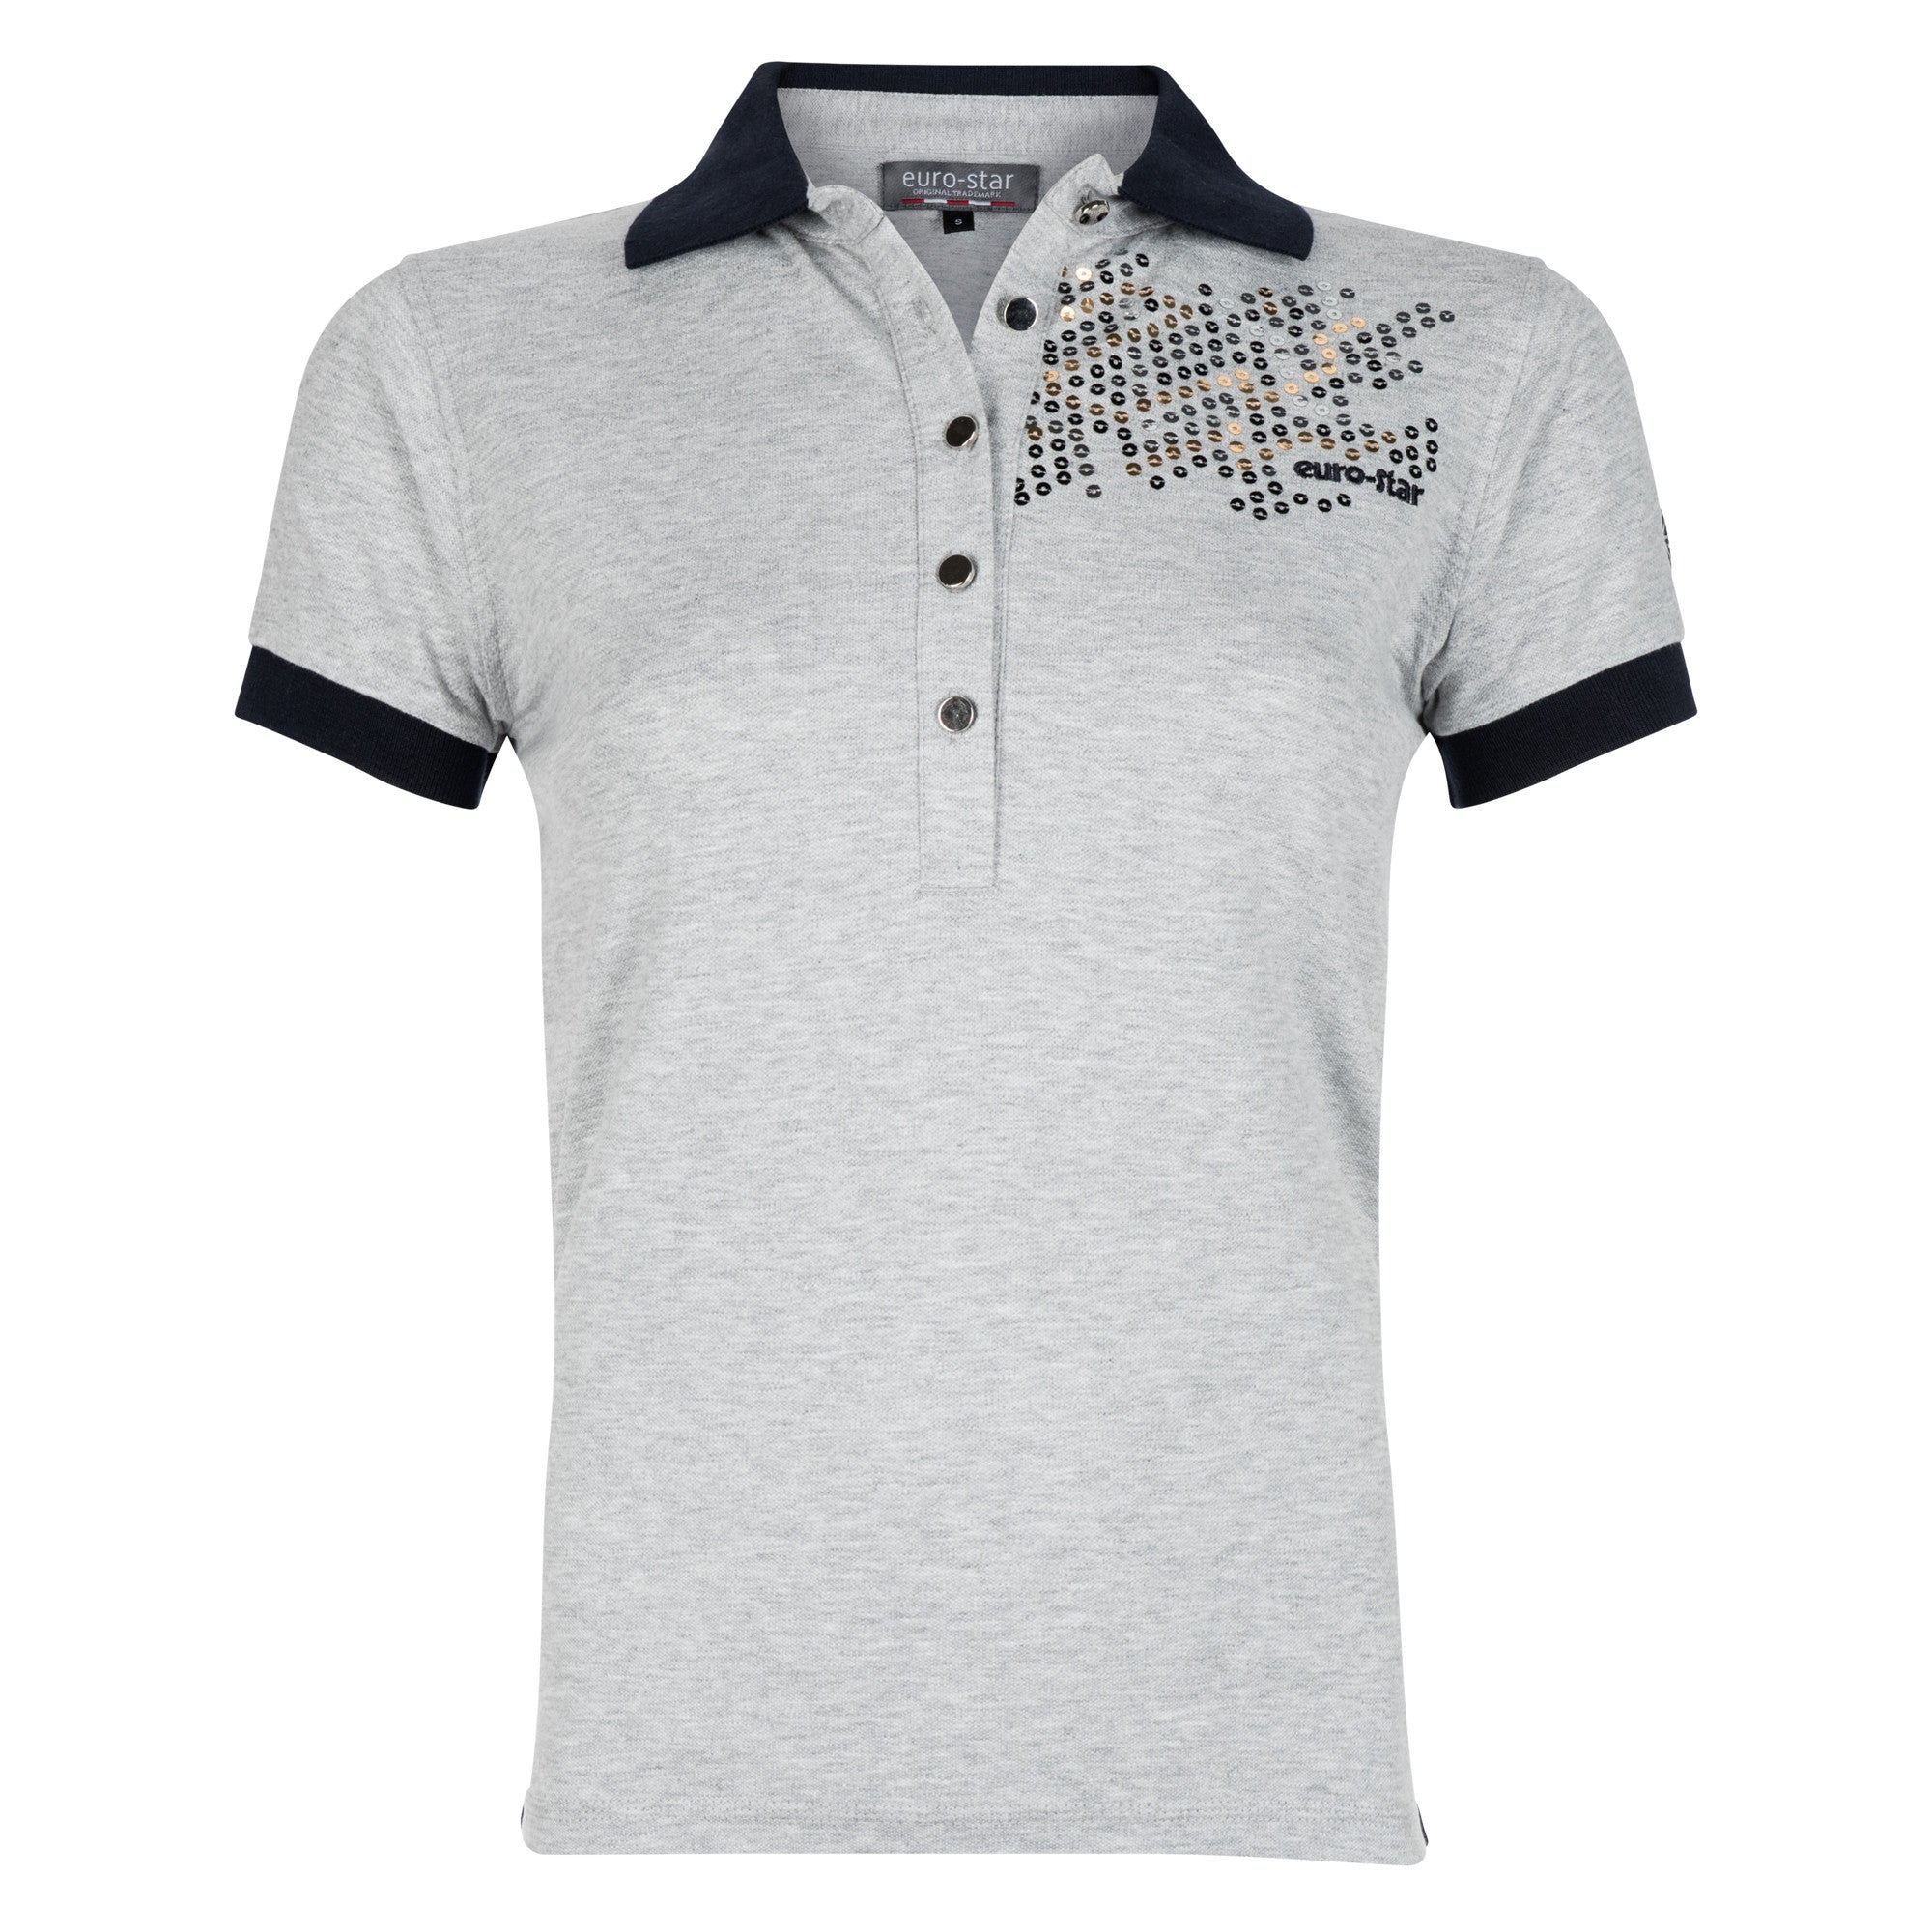 Euro-star SS17 Bella Polo Shirt - Grey